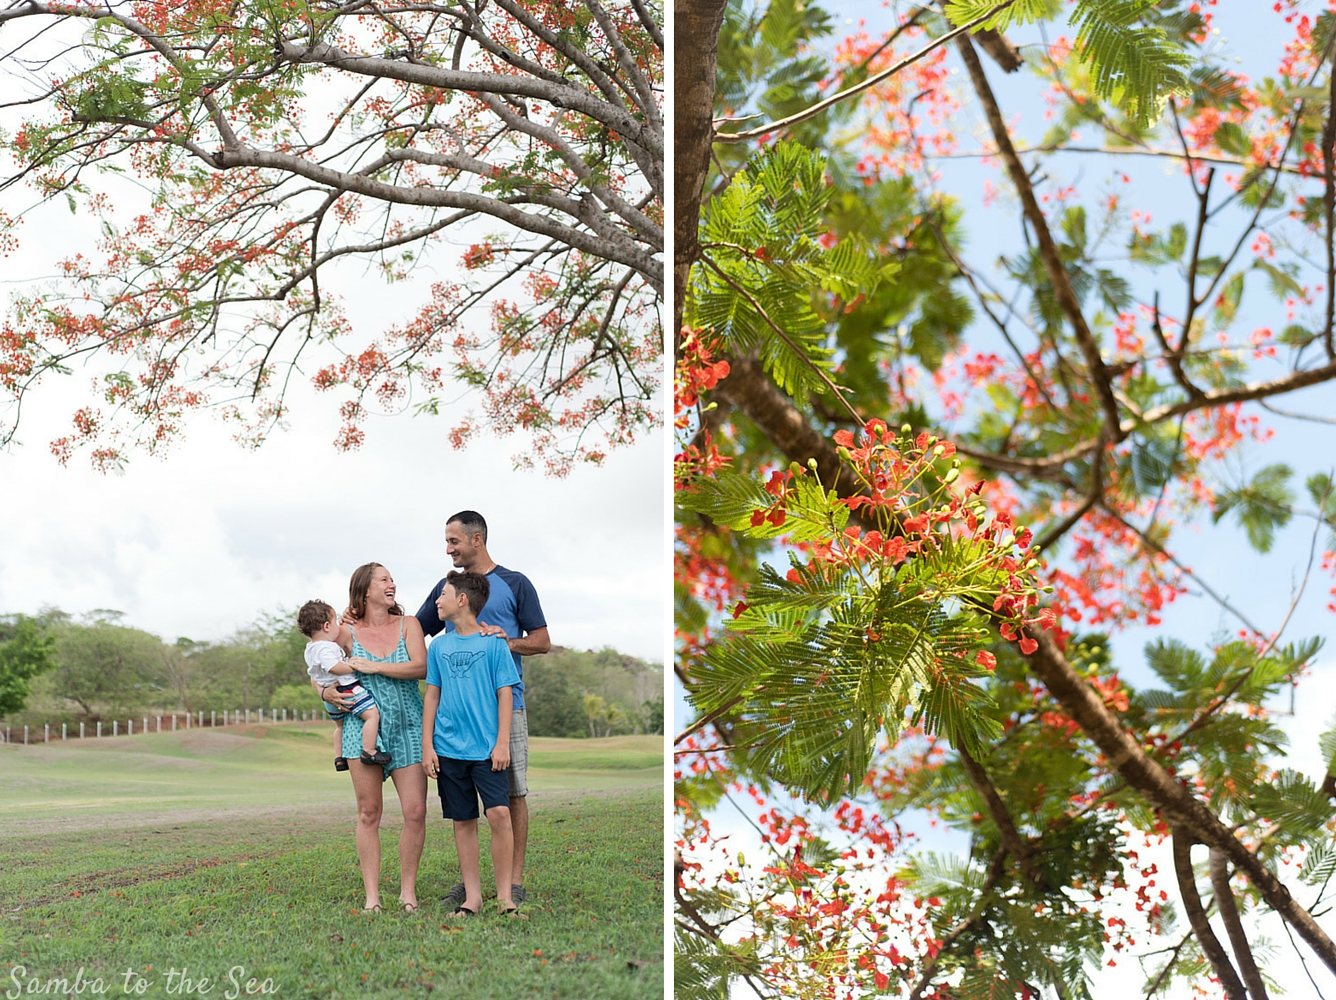 Family photo under a fire red Malinche tree in full bloom. Photographed by Kristen M. Brown, Samba to the Sea Photography.